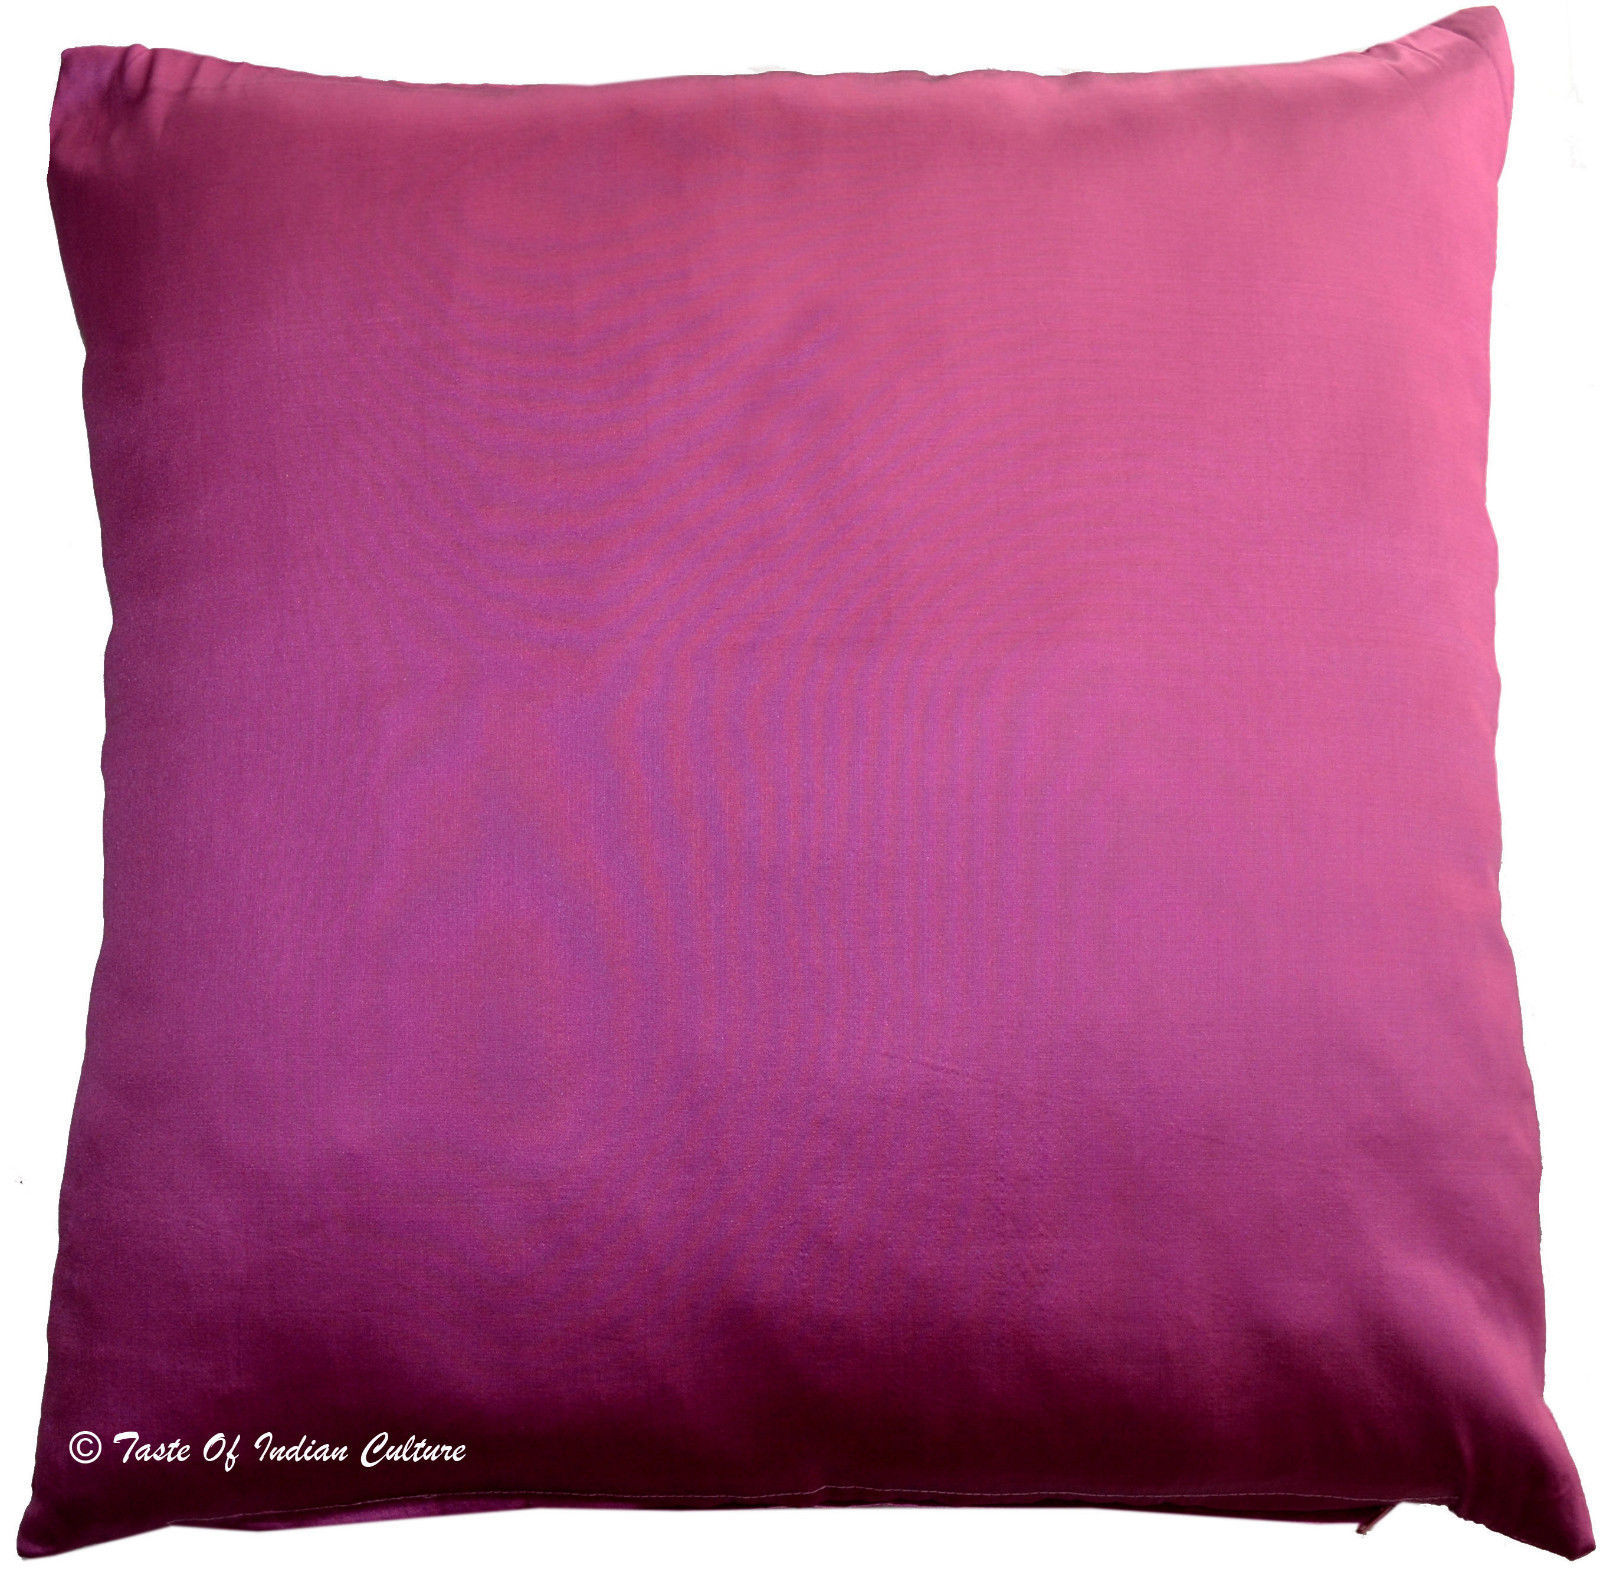 "Primary image for 20"" x 20"" Pink Cushion Pillow Cover Solid Soft Silk Sofa Throw Home Decorative"